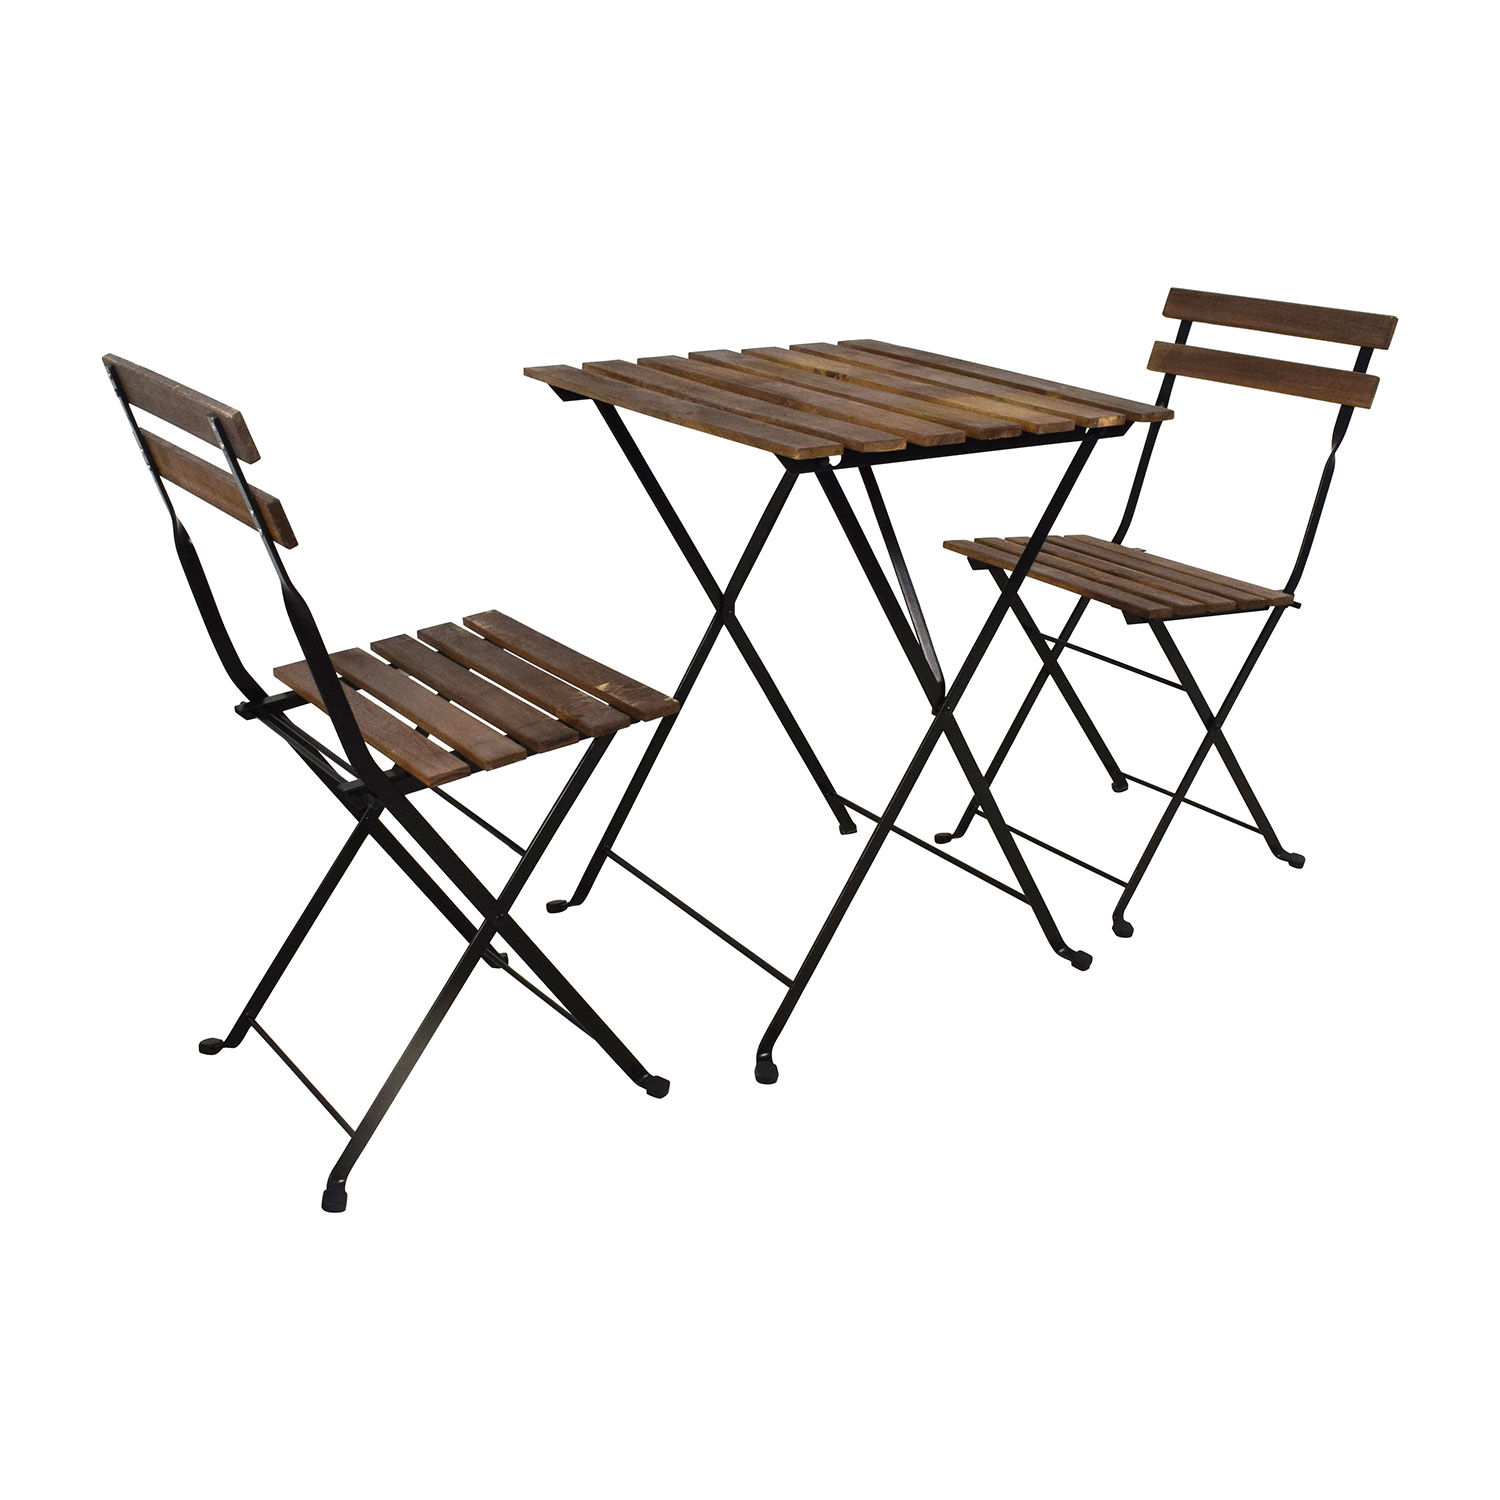 OFF IKEA IKEA Tarno Folding Table and Two Folding Chairs